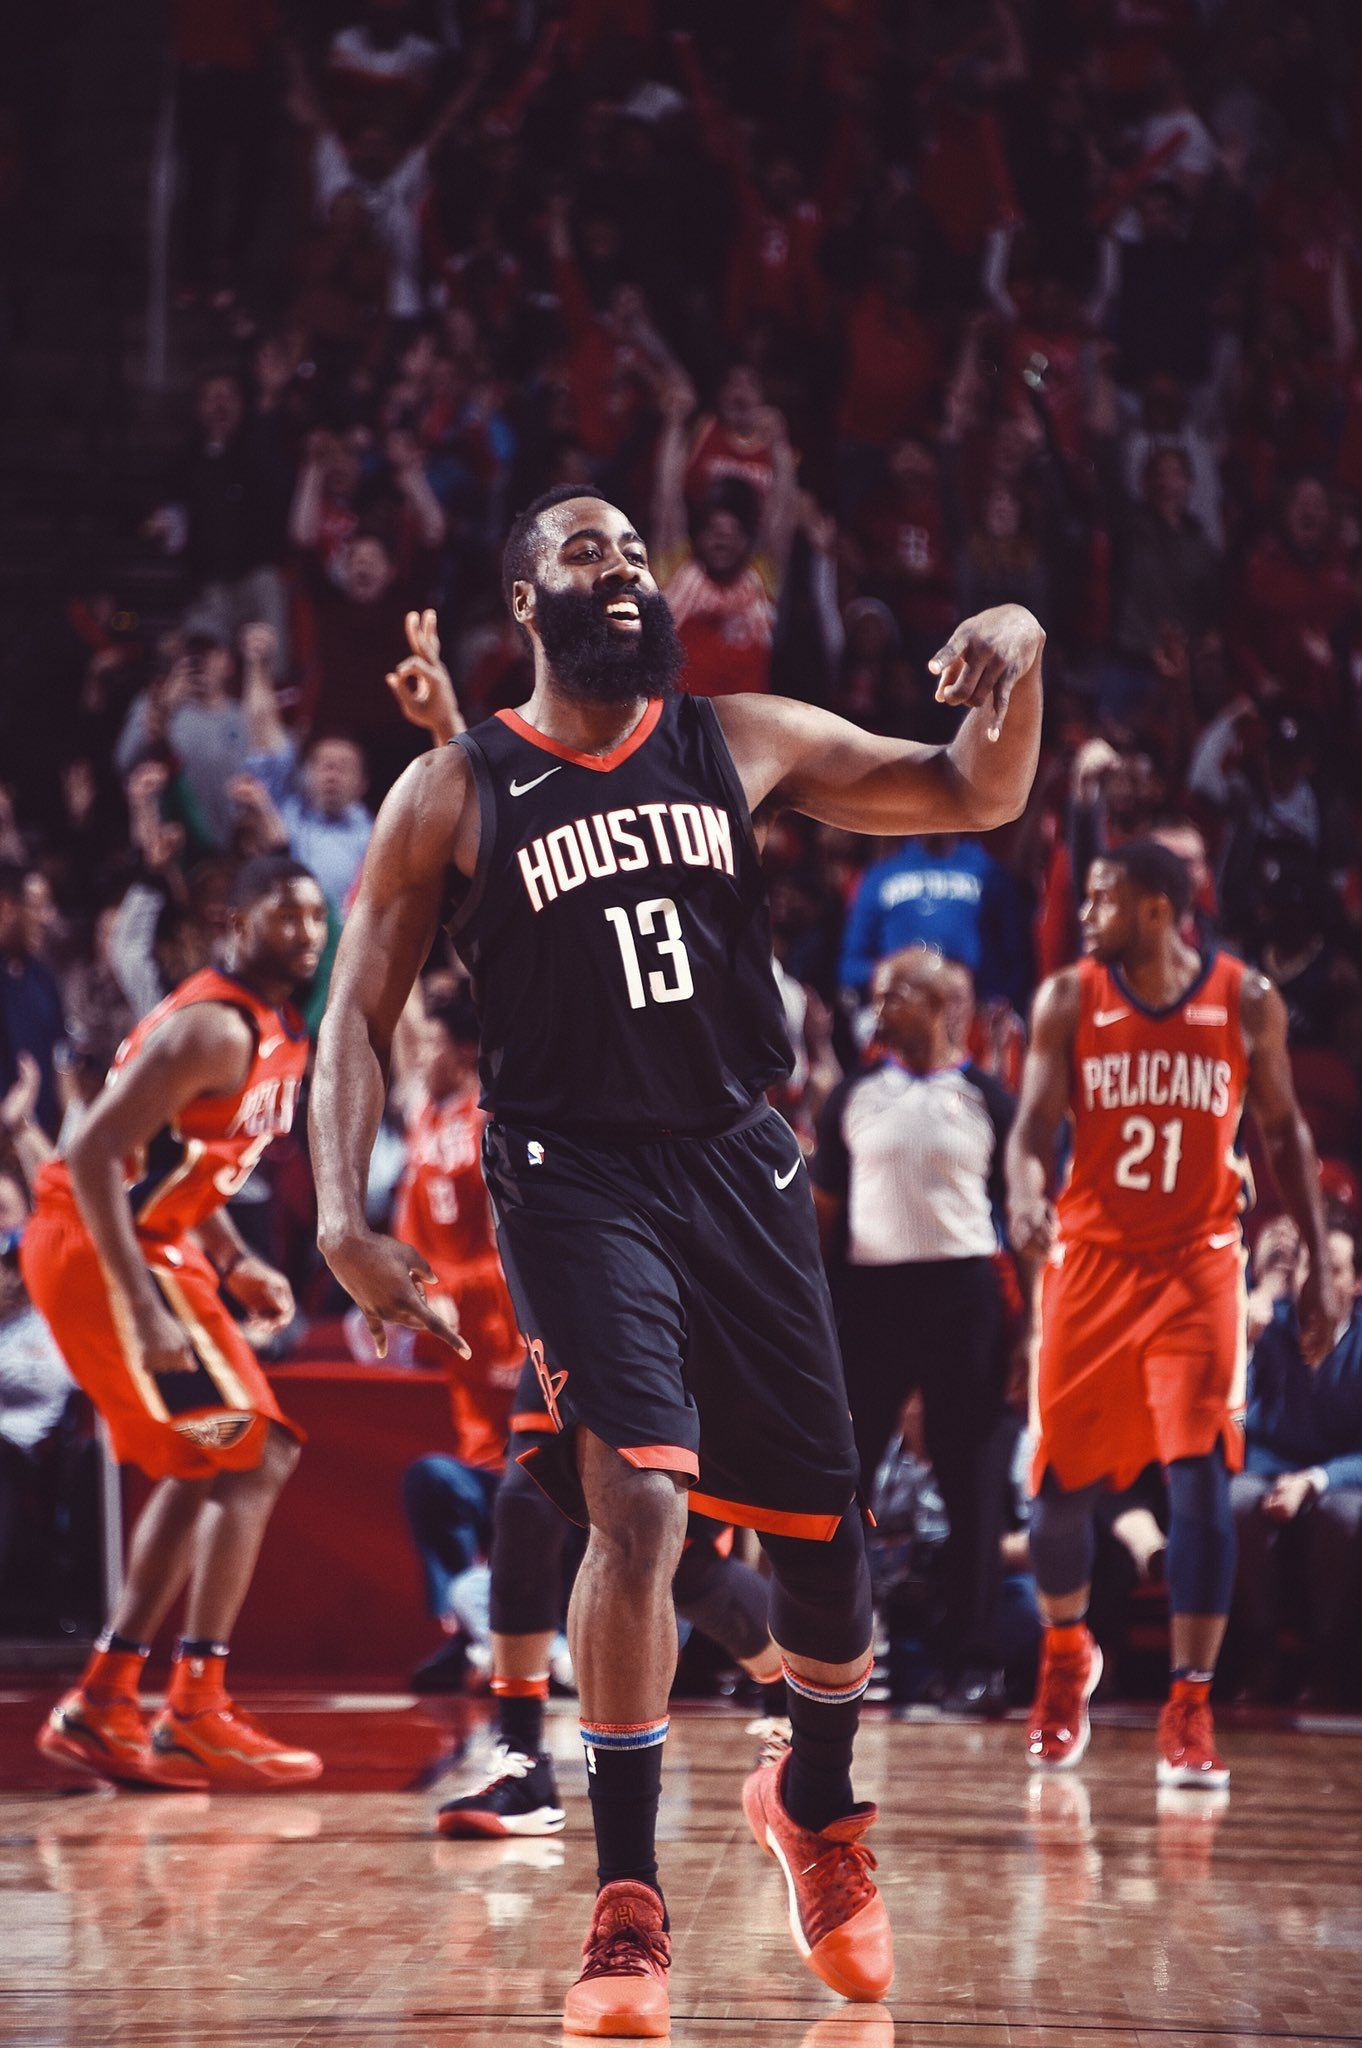 James Harden James Harden Houston Basketball Houston Rockets